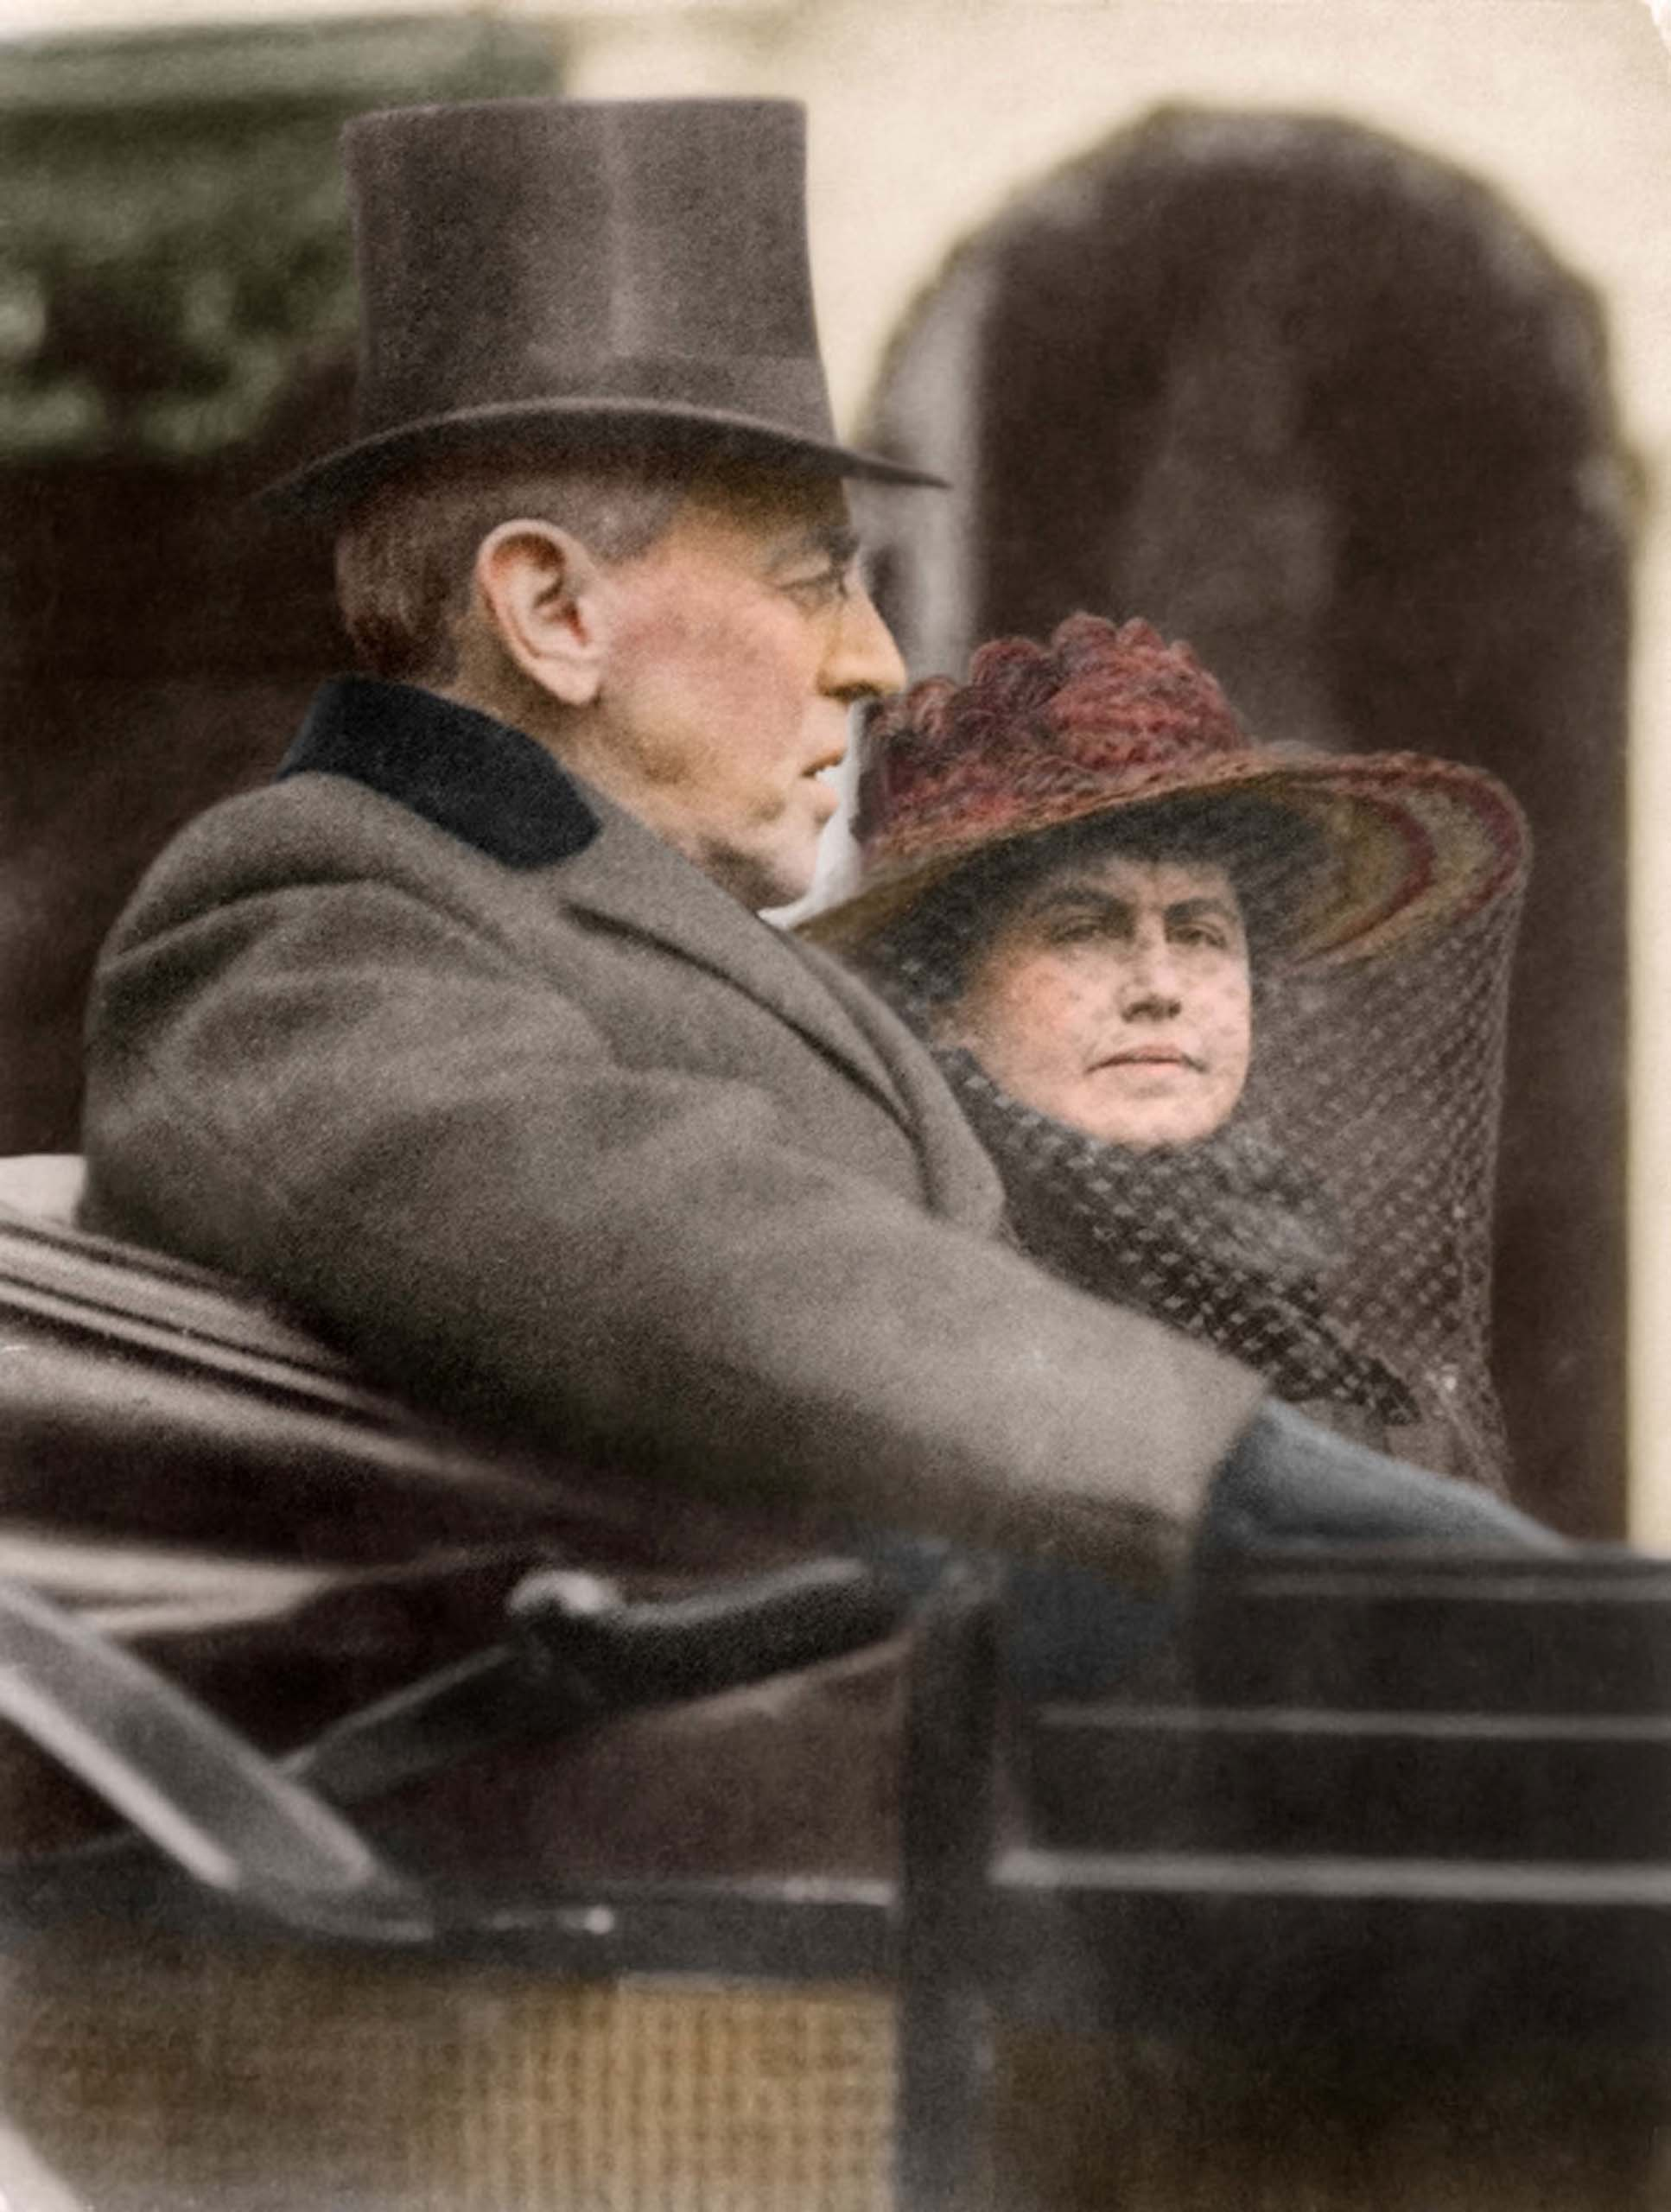 March 5, 1917. Woodrow Wilson and his wife Edith Bolling Wilson riding in the backseat of a carriage on their way to his second inauguration.                                    <i>Ranked #8 in SRI survey of U.S. Presidents.</i>